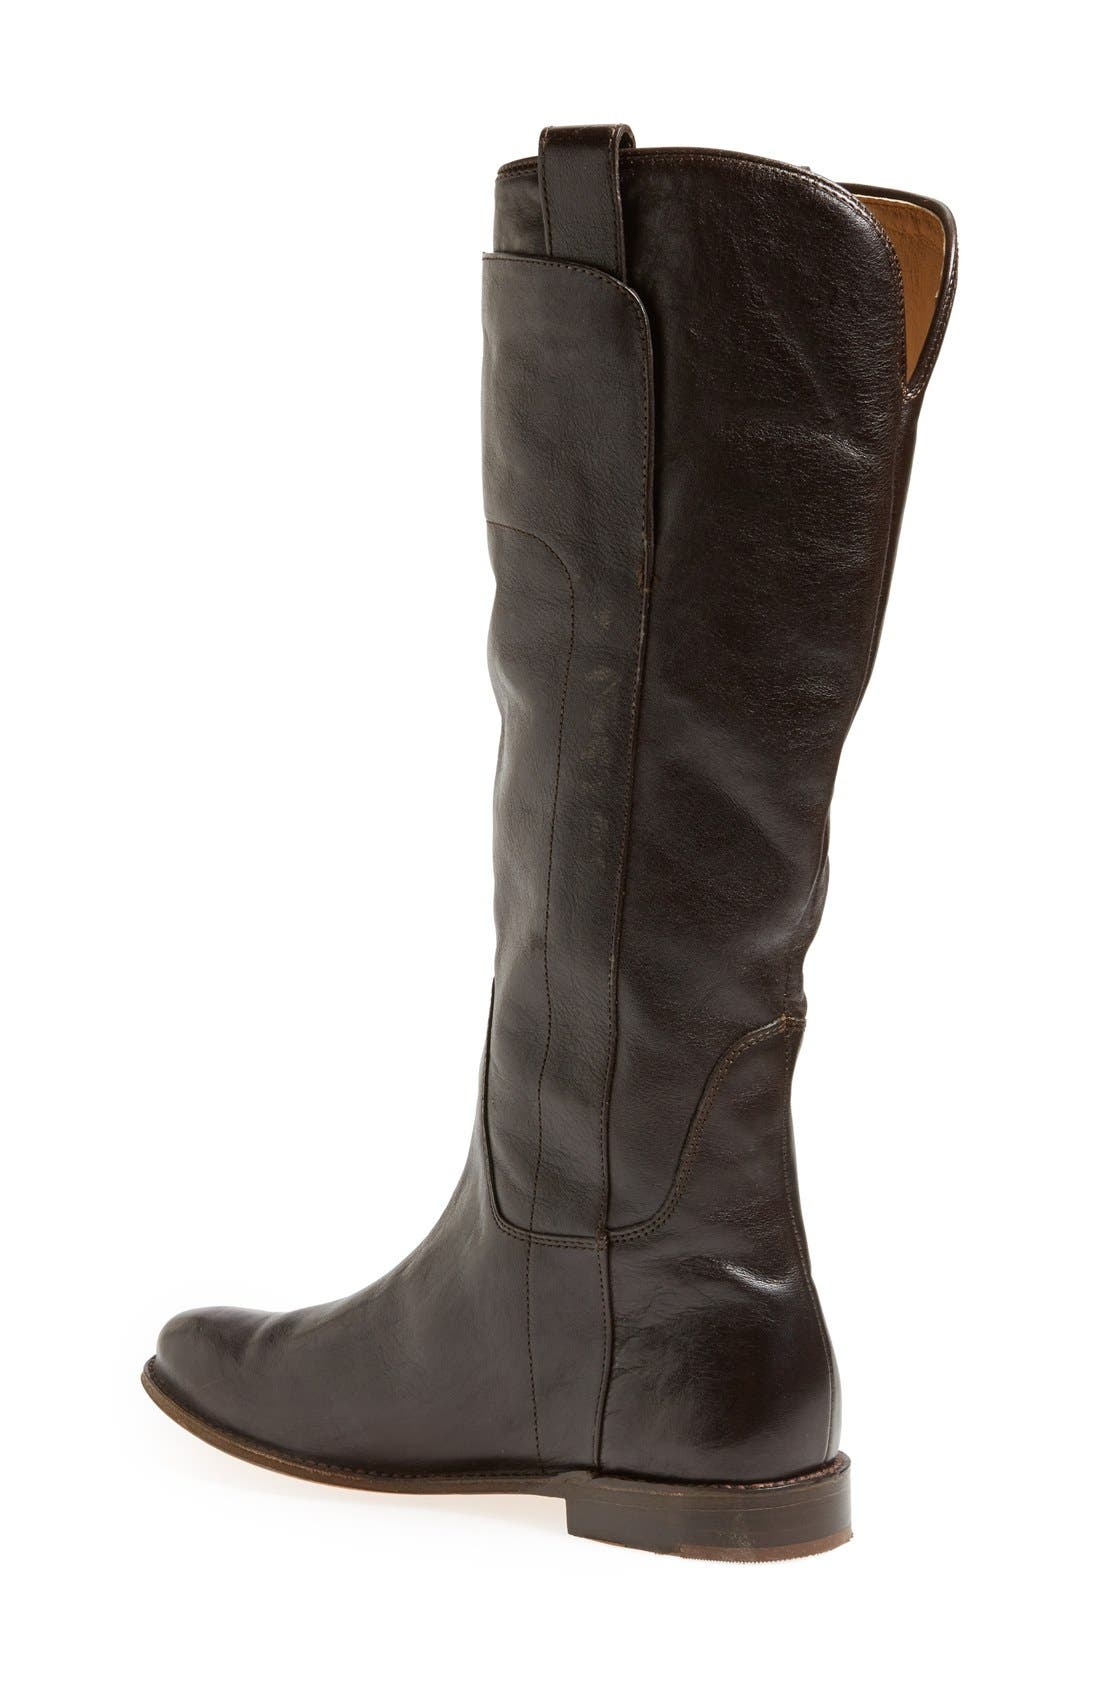 Alternate Image 2  - Frye 'Paige' Tall Riding Boot